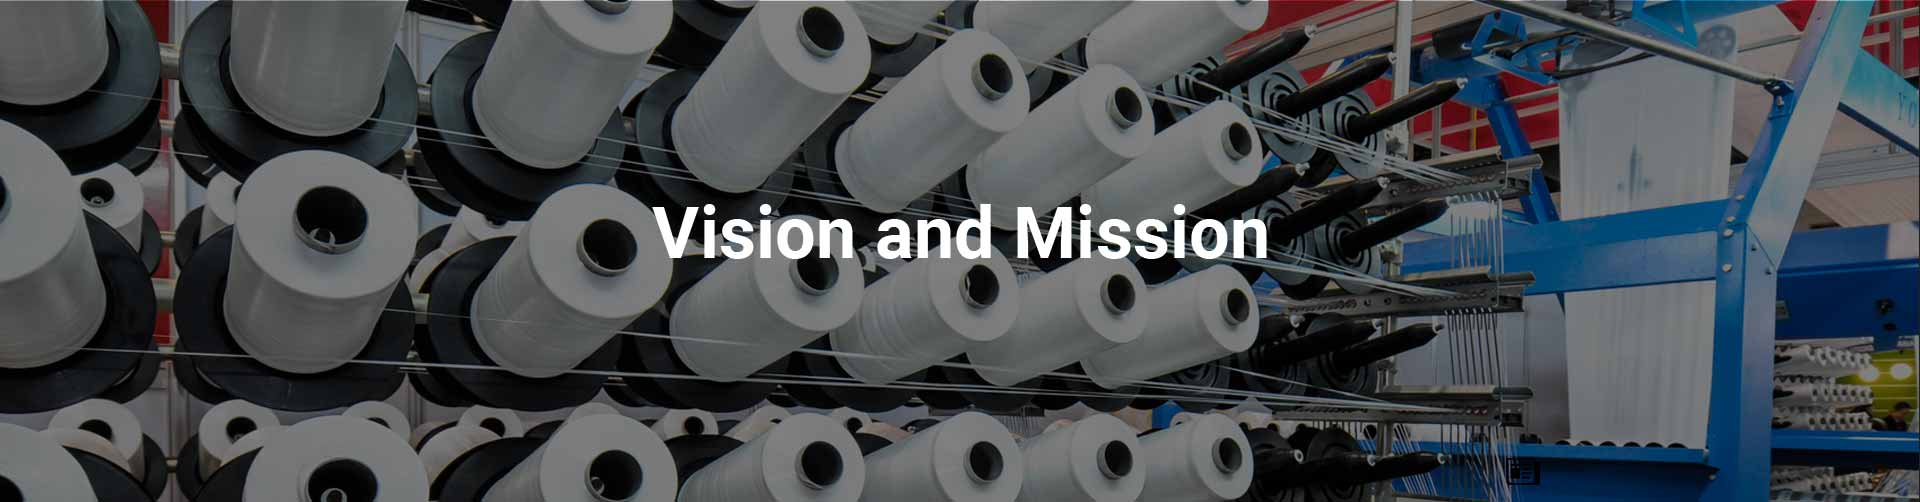 our vision and mission-pommys